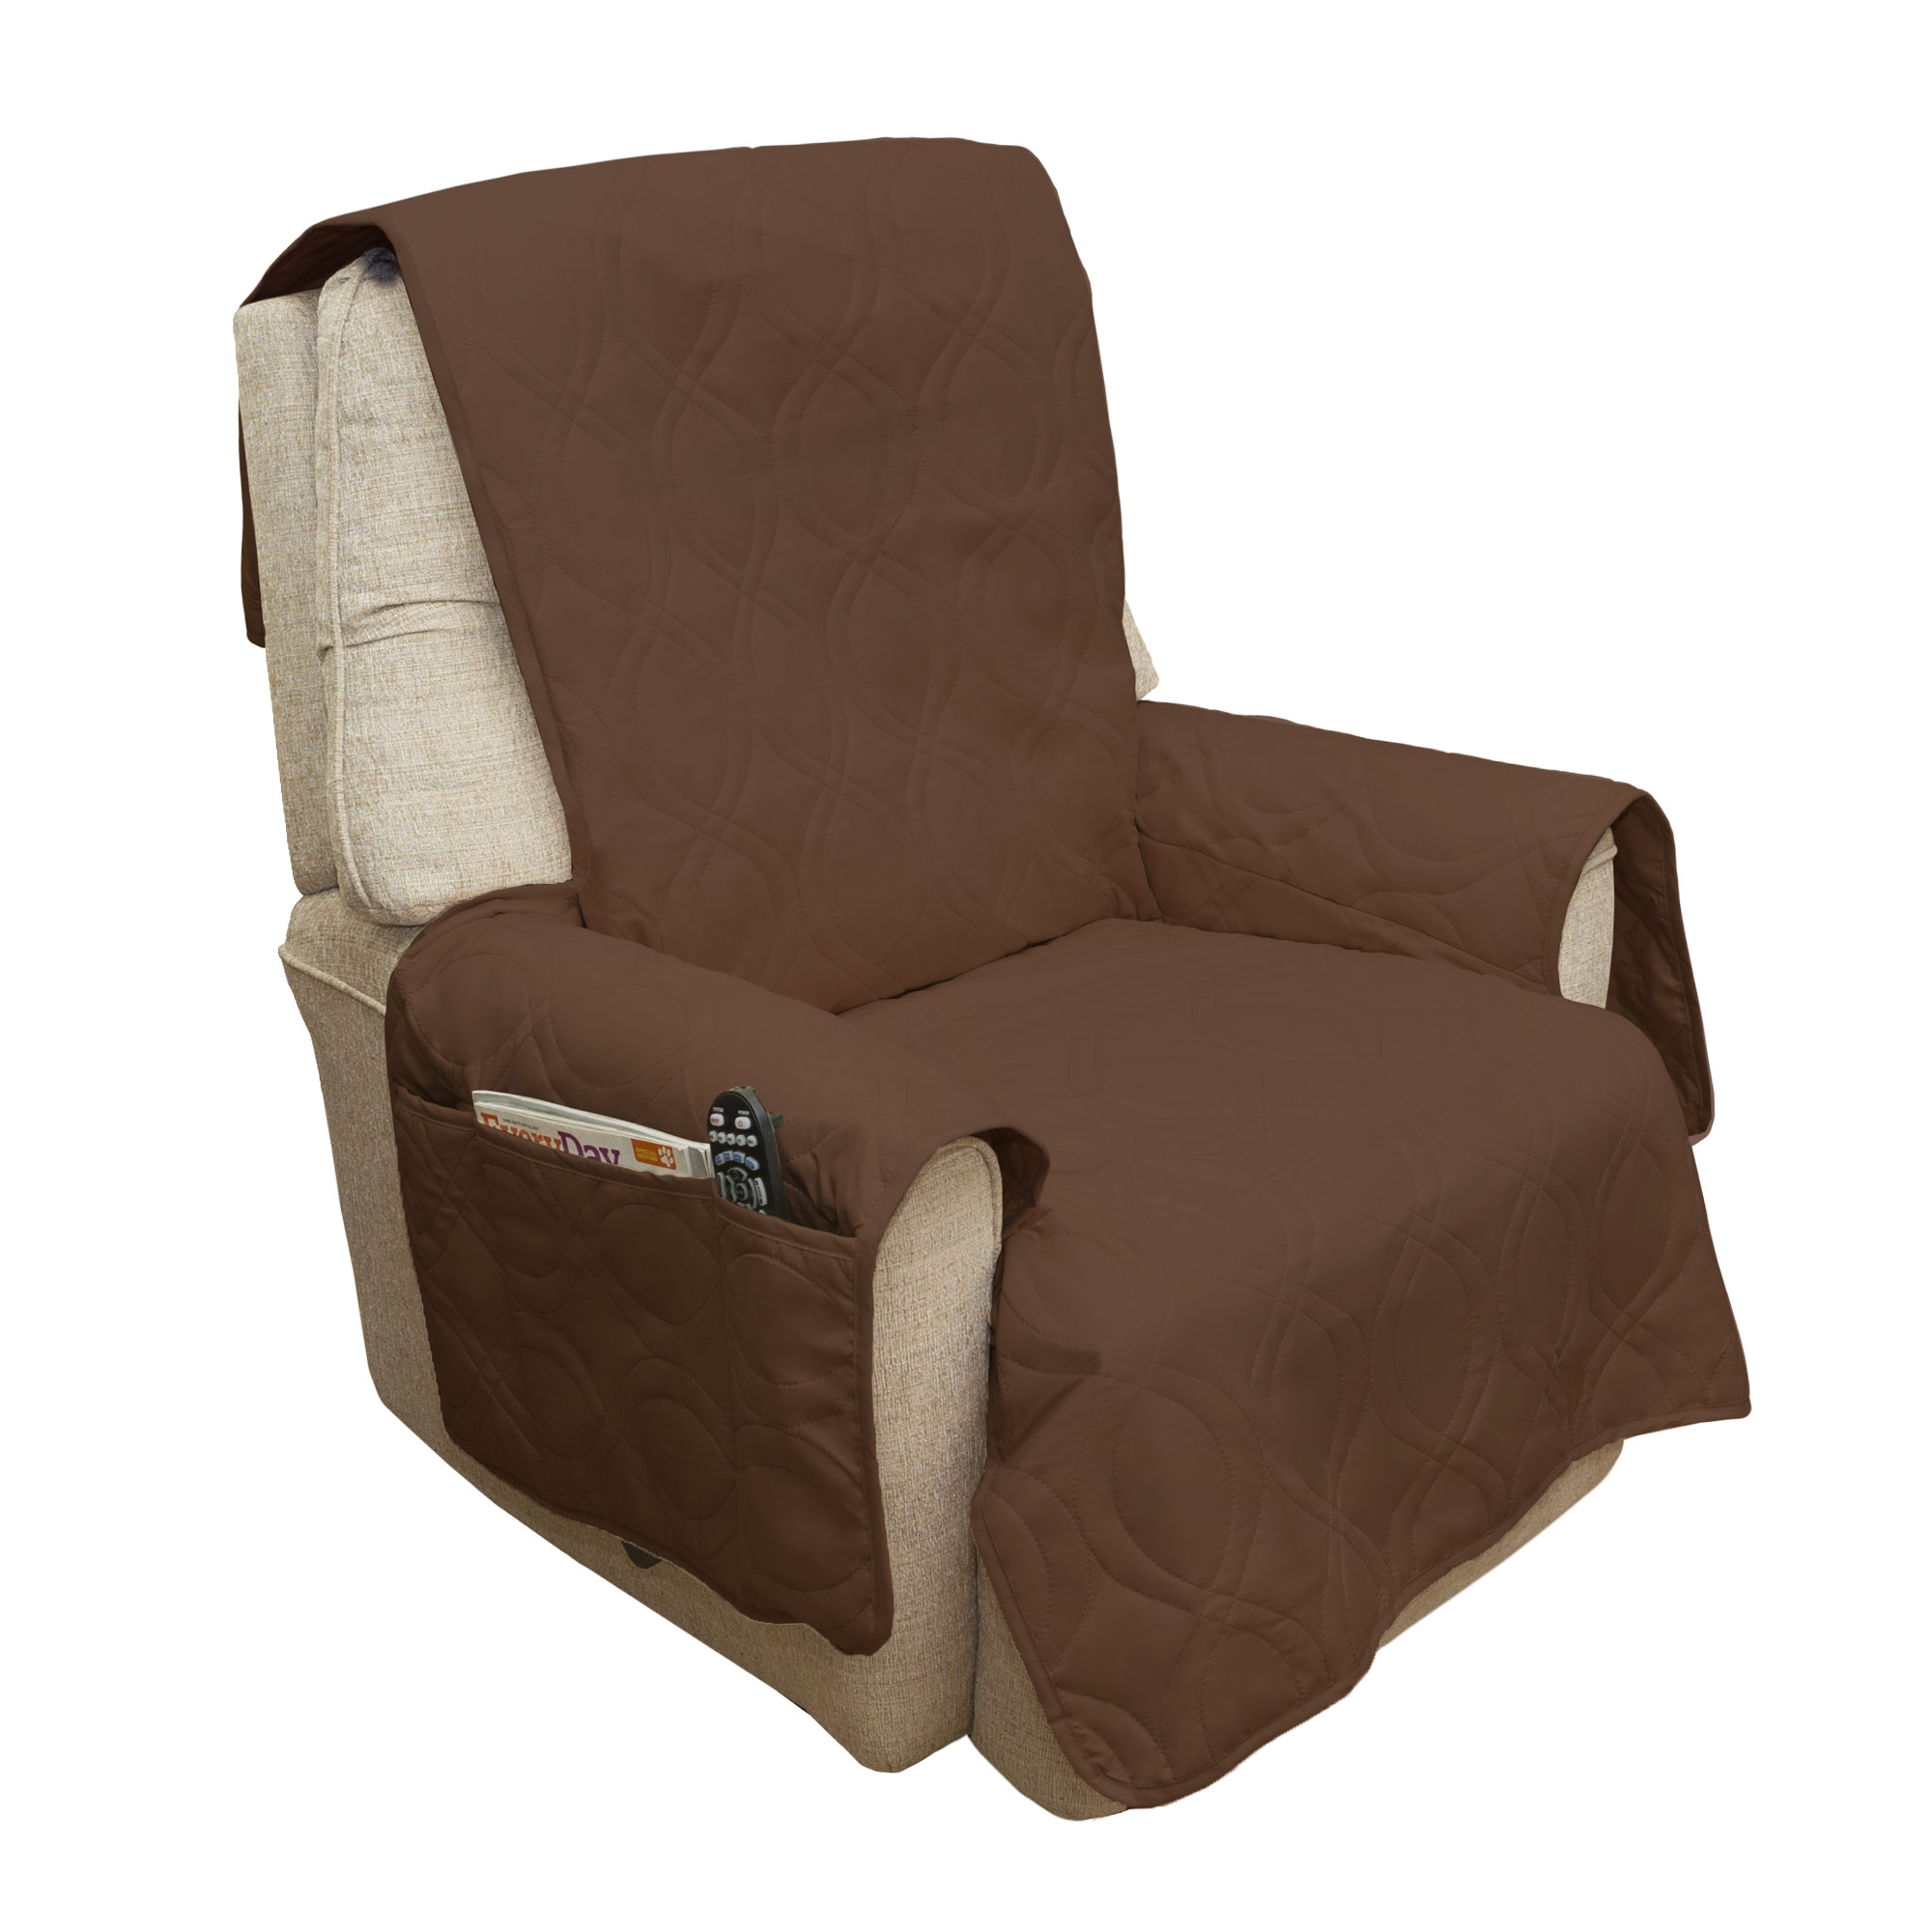 design sofa elegant covers astros sure waterproof chair picture slip attachment brown cover houston fit quirky cushion of slipcover mlb pinterest recliner